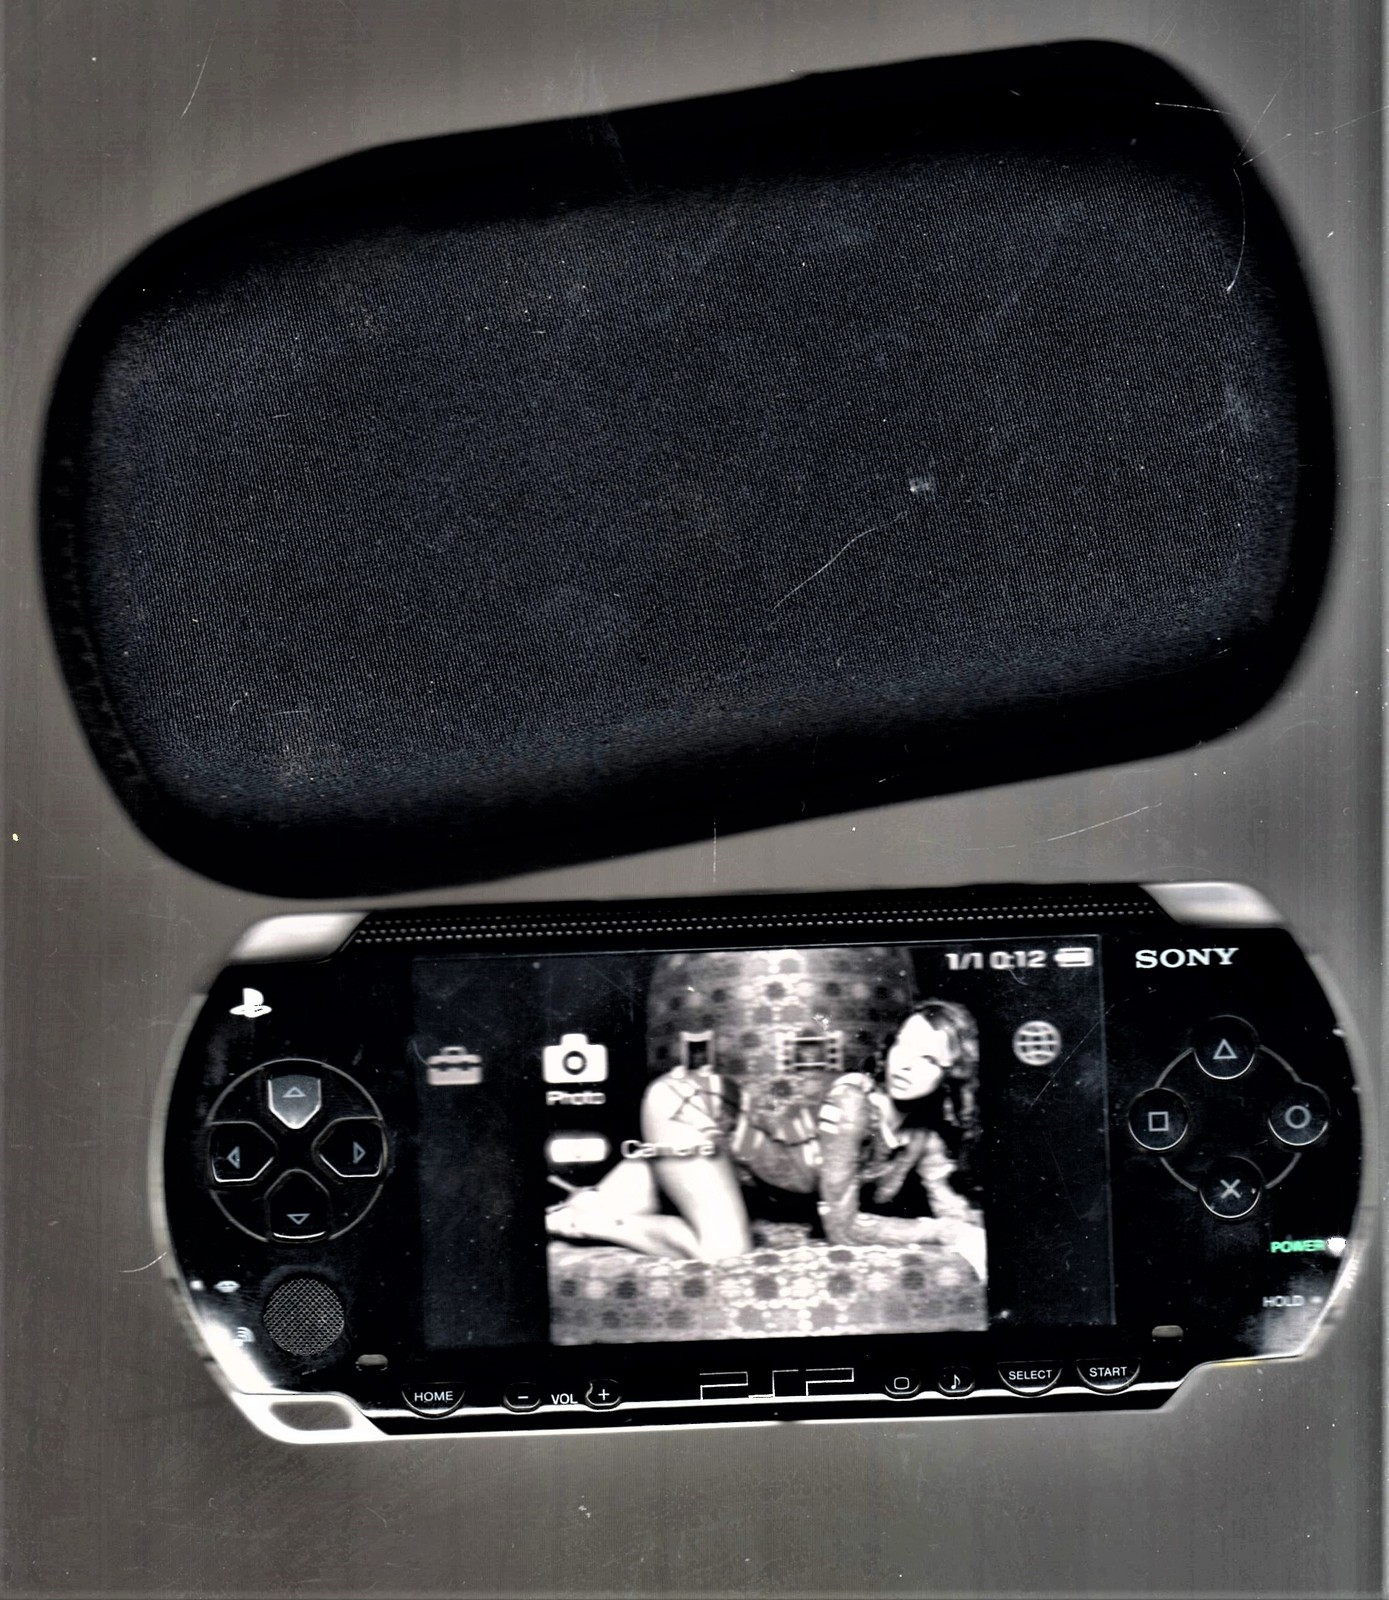 PlayStation Portable PSP 1001 with Power supply, Battery & Cary Case image 5